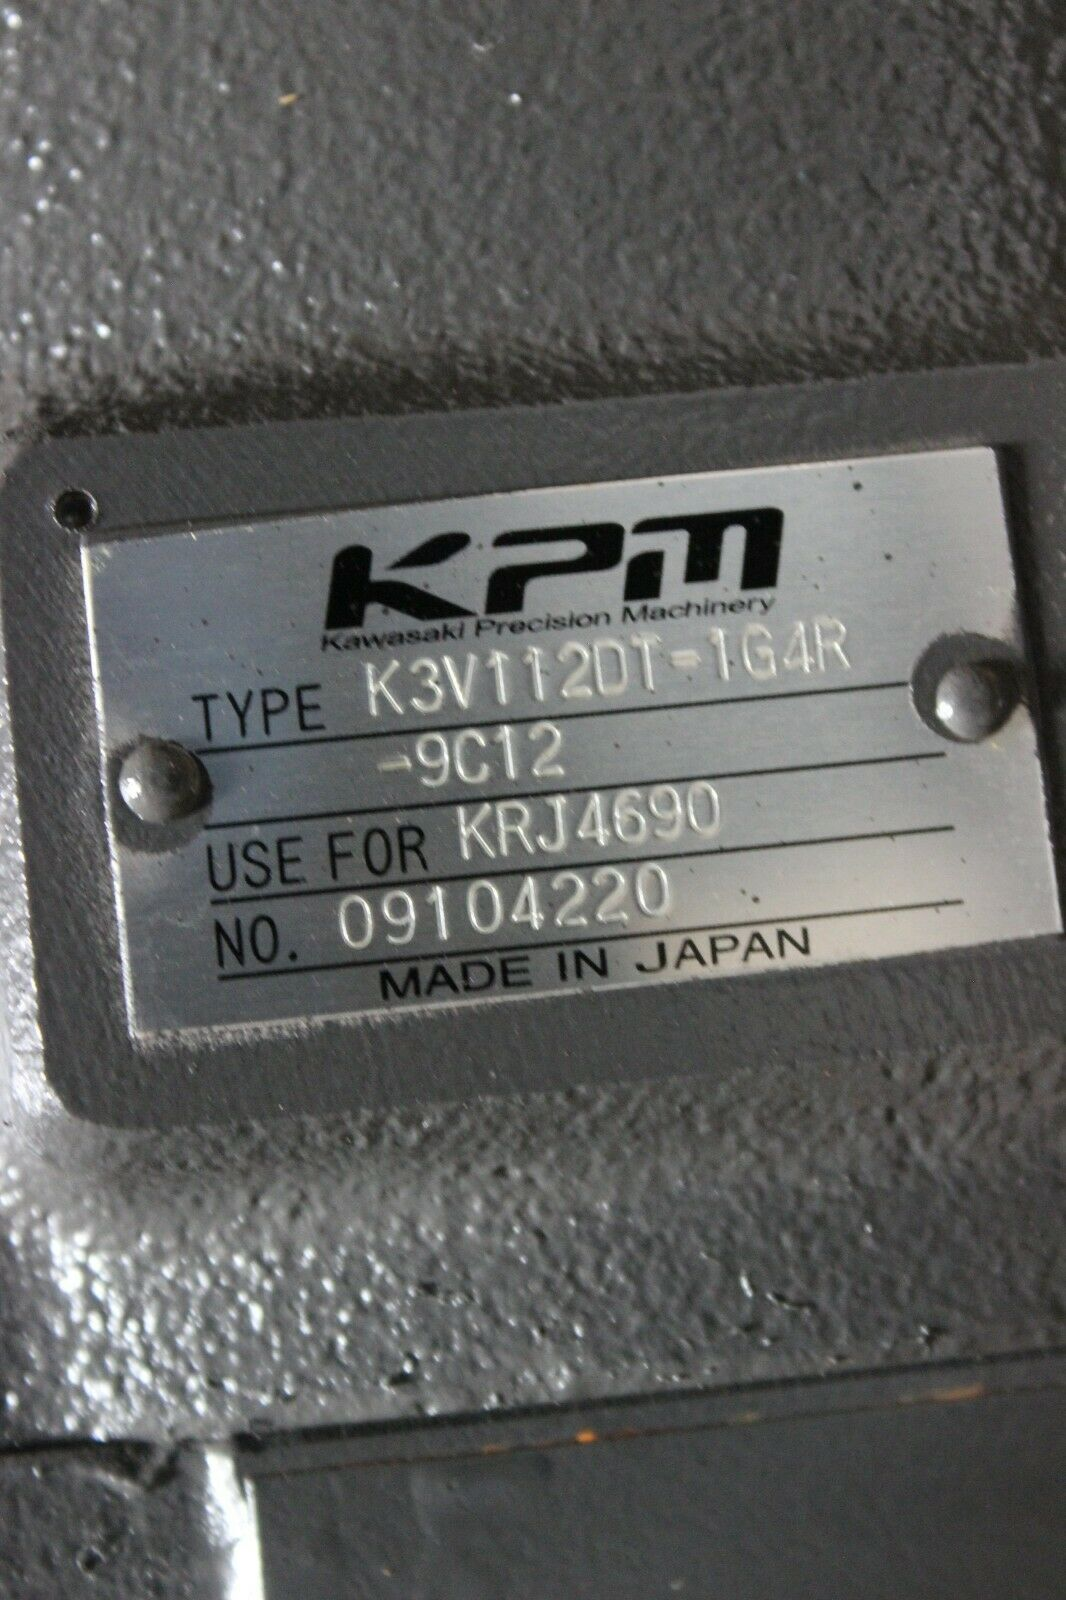 Primary image for Case 9030B Hydraulic Main Pump 162219A1 Kawasaki K3V112DT-1G4R-9C12 New